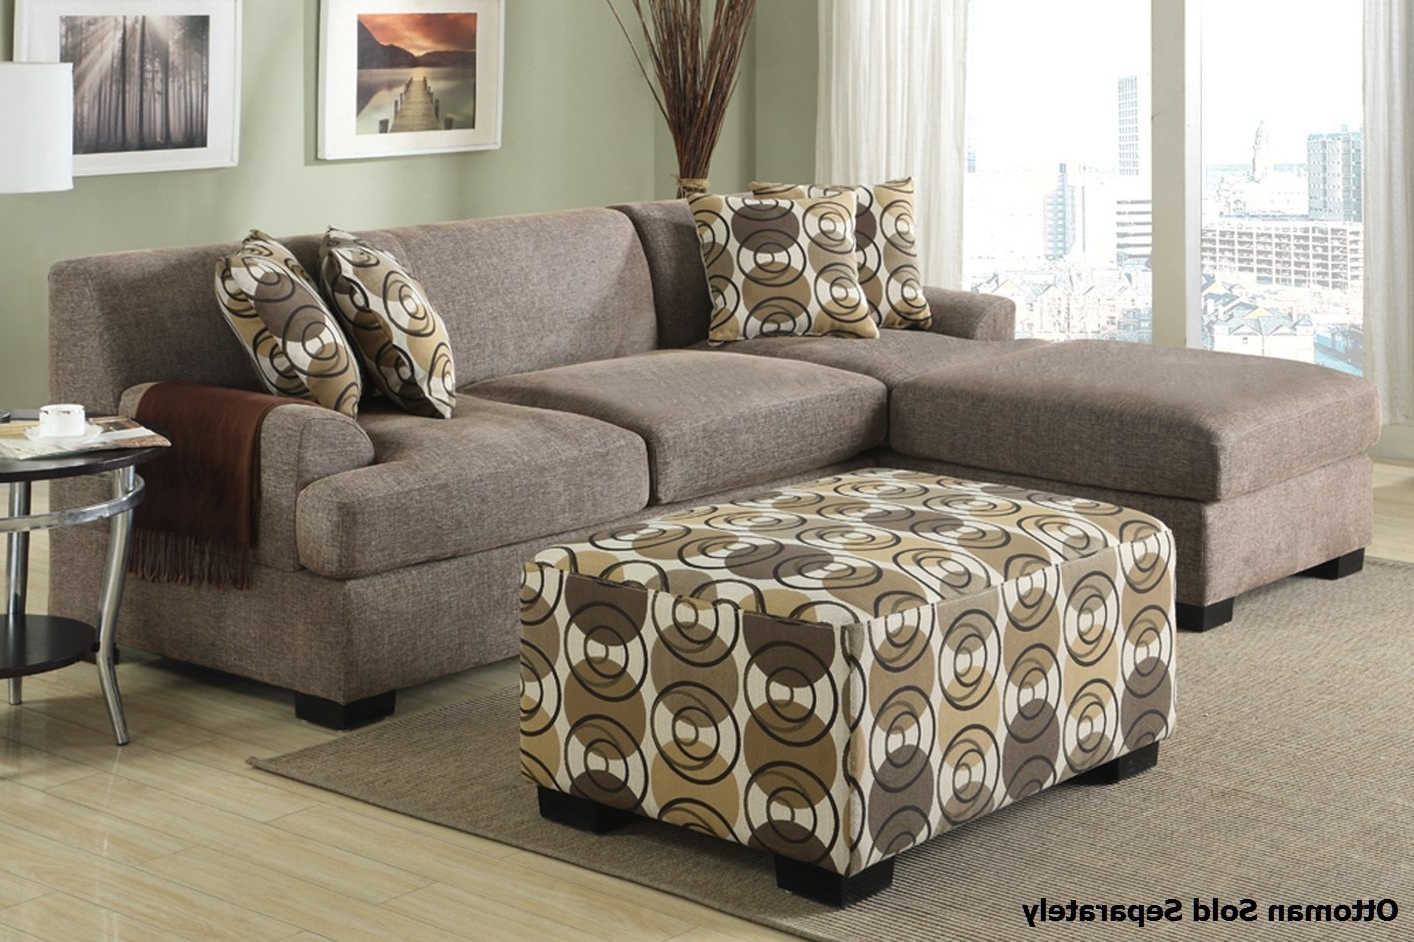 Montreal Ii Beige Fabric Sectional Sofa – Steal A Sofa Furniture With Regard To Trendy Montreal Sectional Sofas (View 6 of 15)